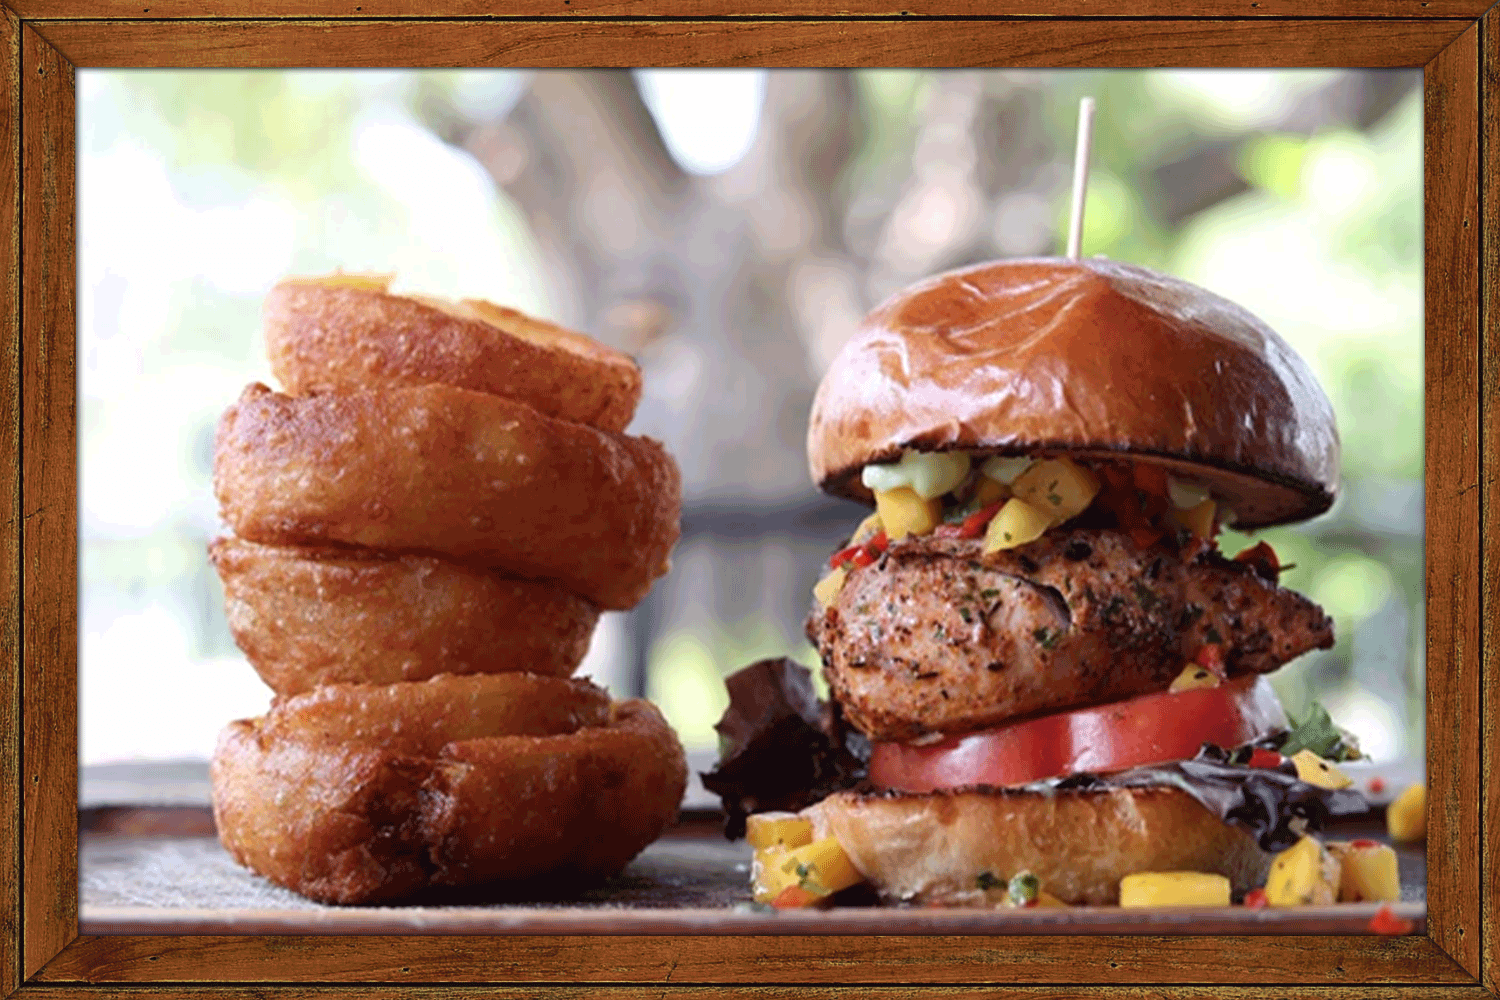 Teak Burger with Onion Rings